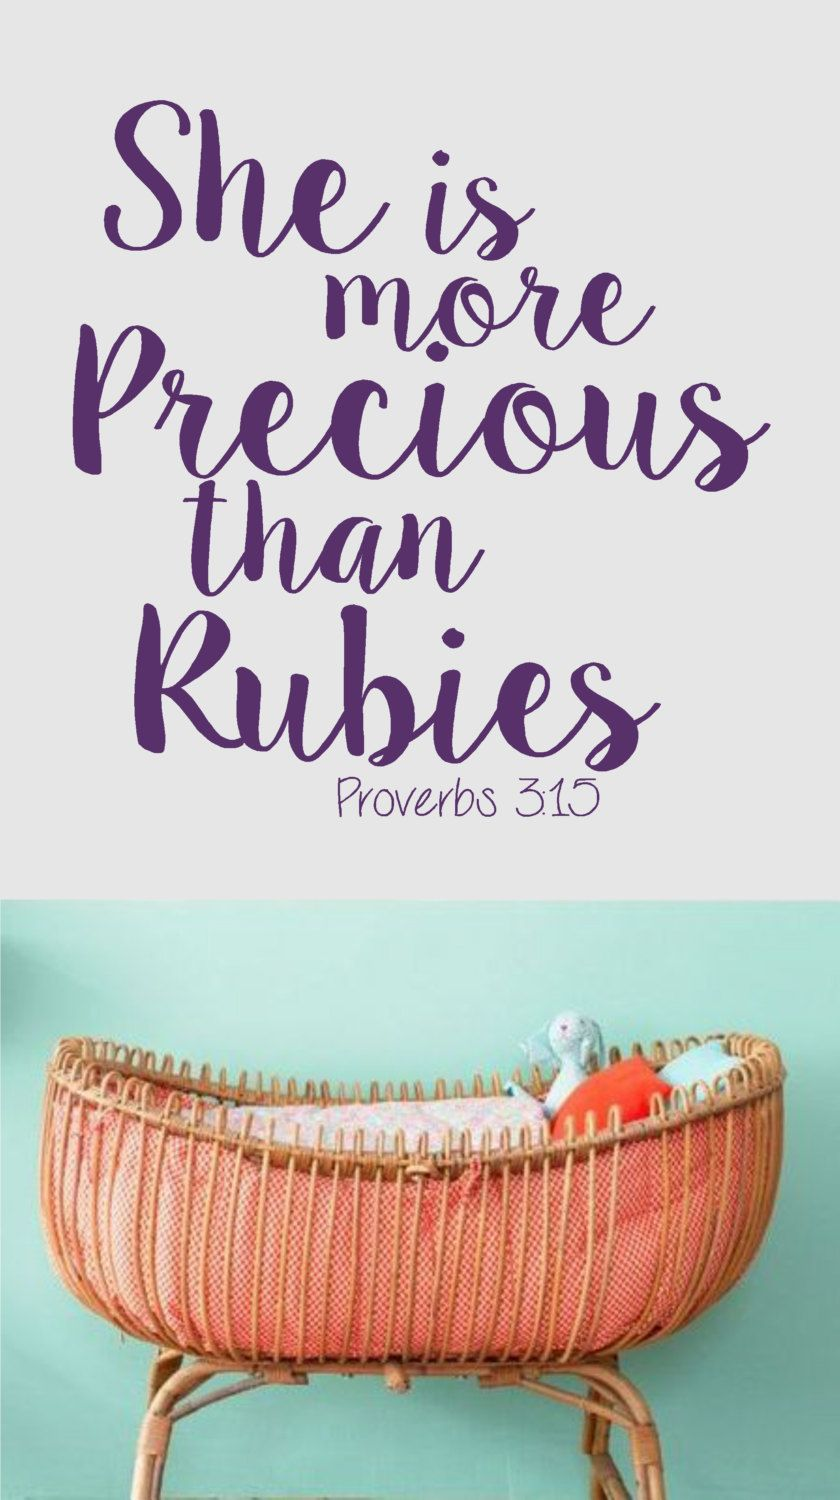 Vinyl Wall Decal-She is more Precious than Rubies-Proverbs 315-Vinyl Wall Decal-Bible Verse-Scripture-Nursery Decor-Girls Room by landbgraphics on Etsy  sc 1 st  Pinterest & Vinyl Wall Decal-She is more Precious than Rubies-Proverbs 3:15 ...